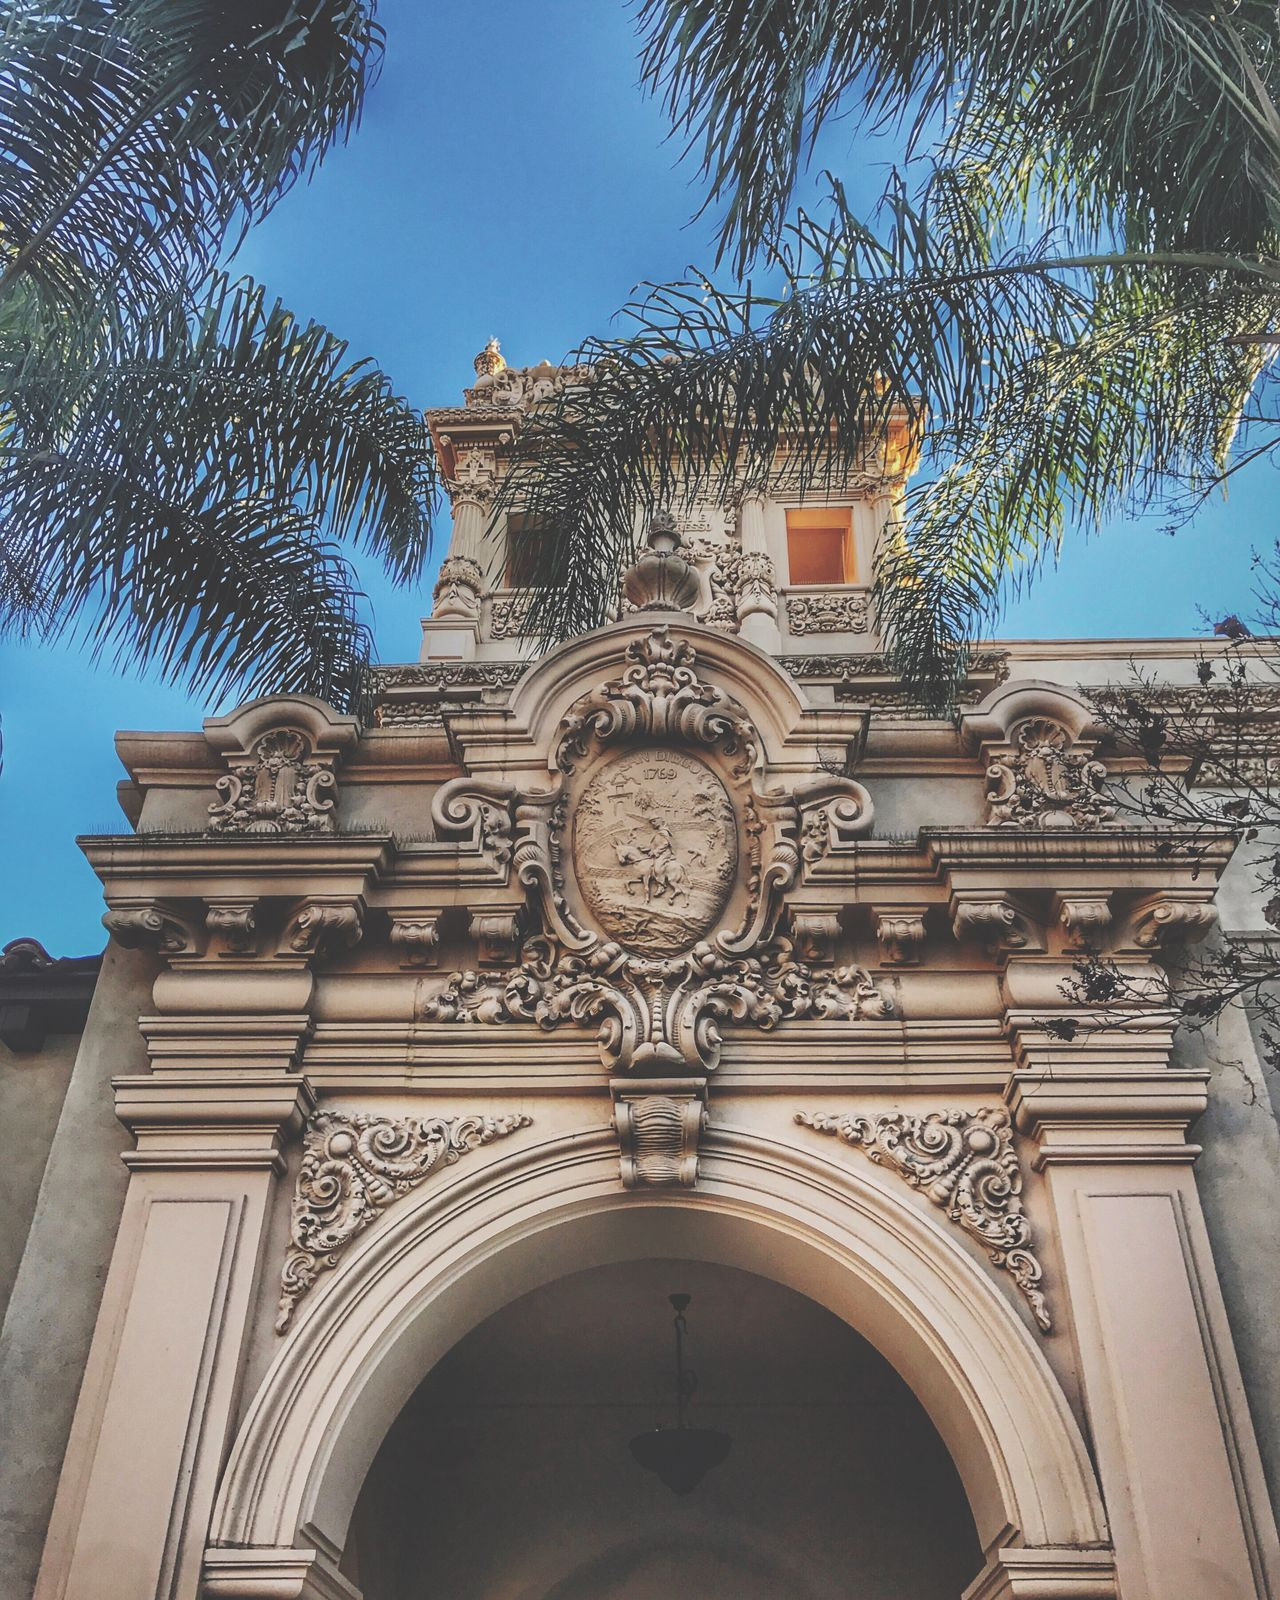 Architecture Built Structure Building Exterior San Diego Balboa Park Spanish Mexican California Endlesssummer Sun Baroque Architecture Renesance History Beautiful Beige Green Palm Tree Palm Exploring Travel Destination America USA Photos Low Angle View No People Outdoors Sky Day Tree City Clock